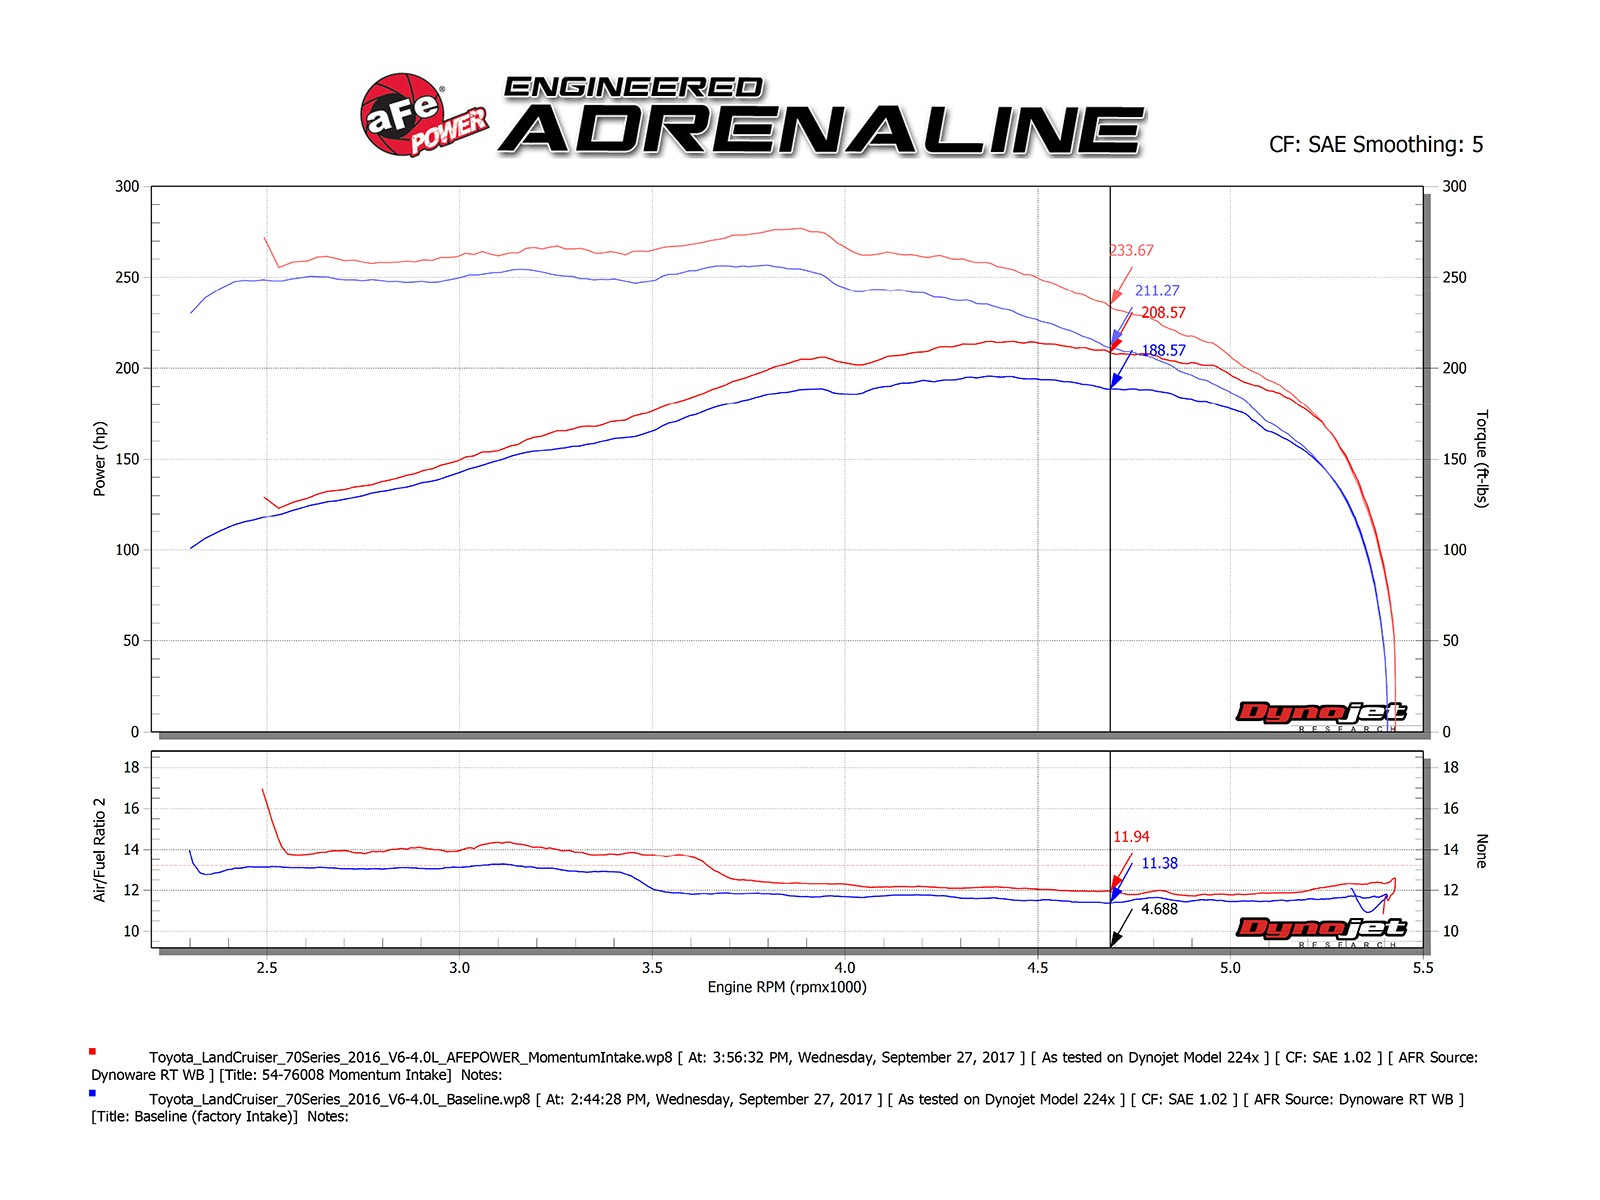 Momentum Gt Pro 5r Cold Air Intake System Afe Power 1994 Toyota 3 0 V6 Engine Diagrams Adds Up To 118 Flow Increase 20 Hp Horsepower 22 Lbs X Ft Torque Max Gains